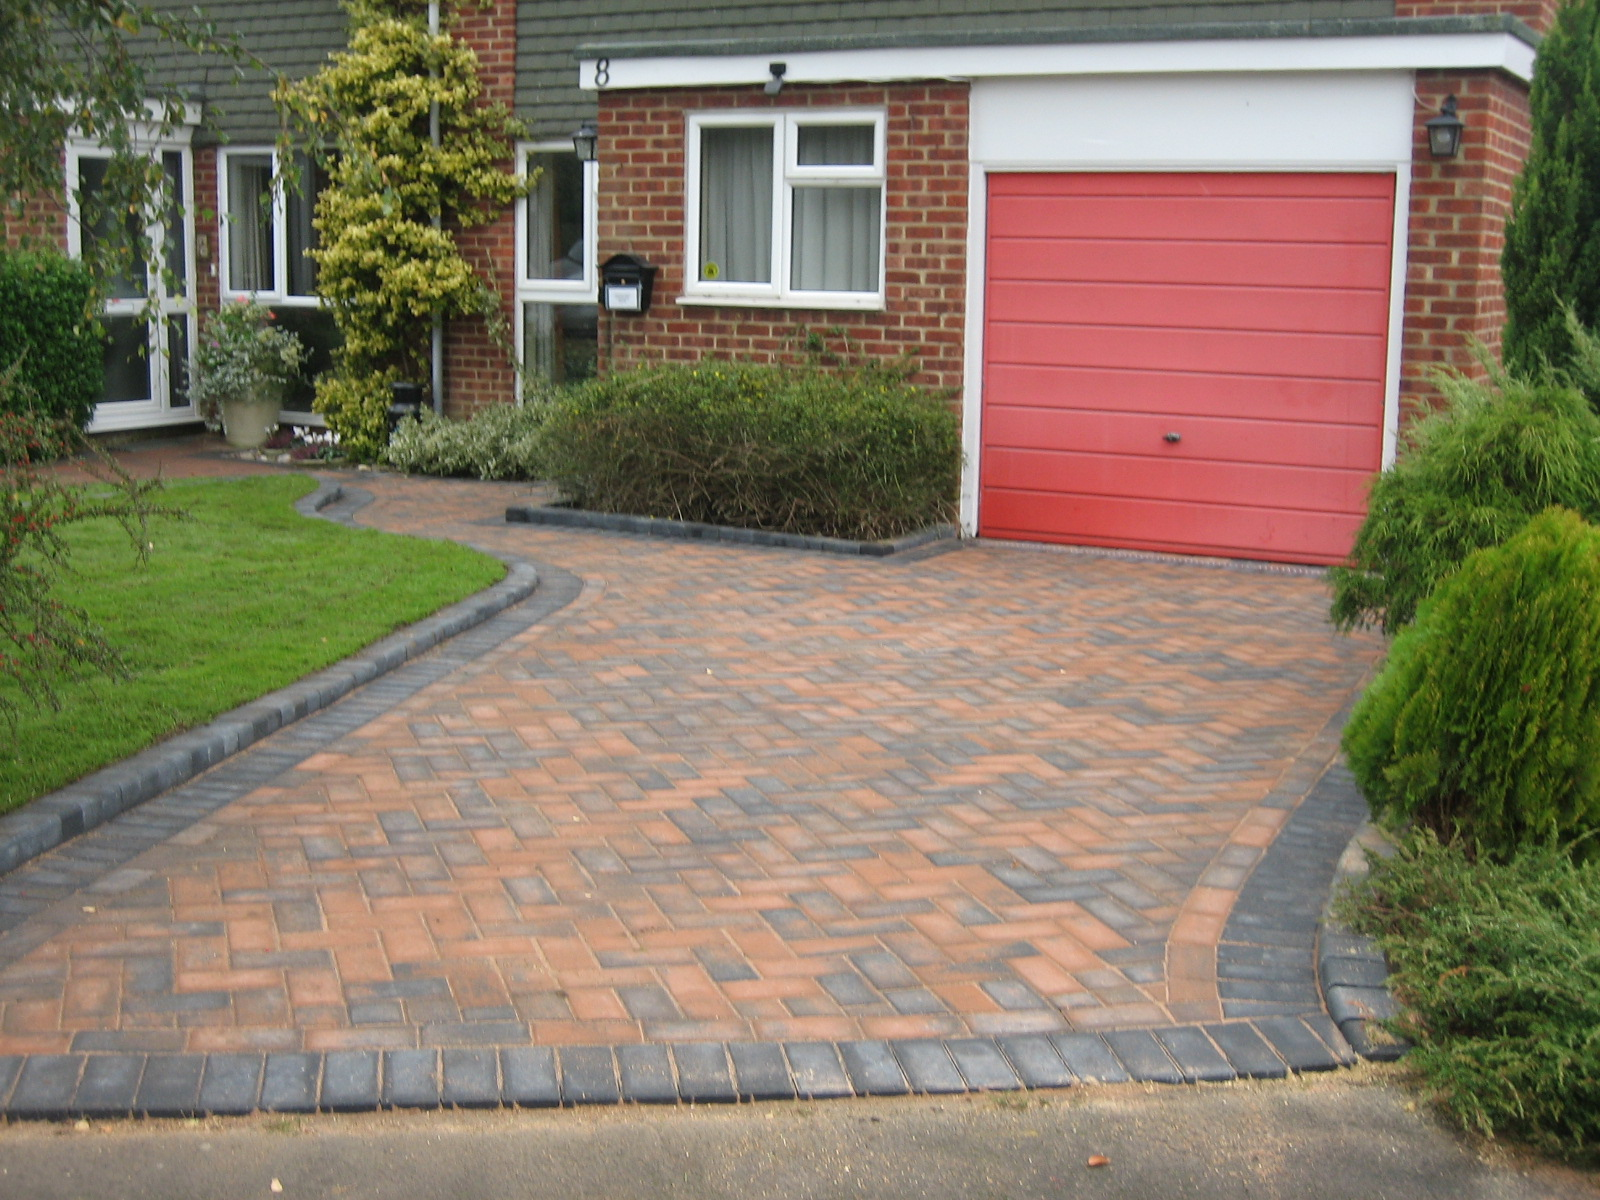 Galleries abbey paving block paving specialists for New driveway ideas